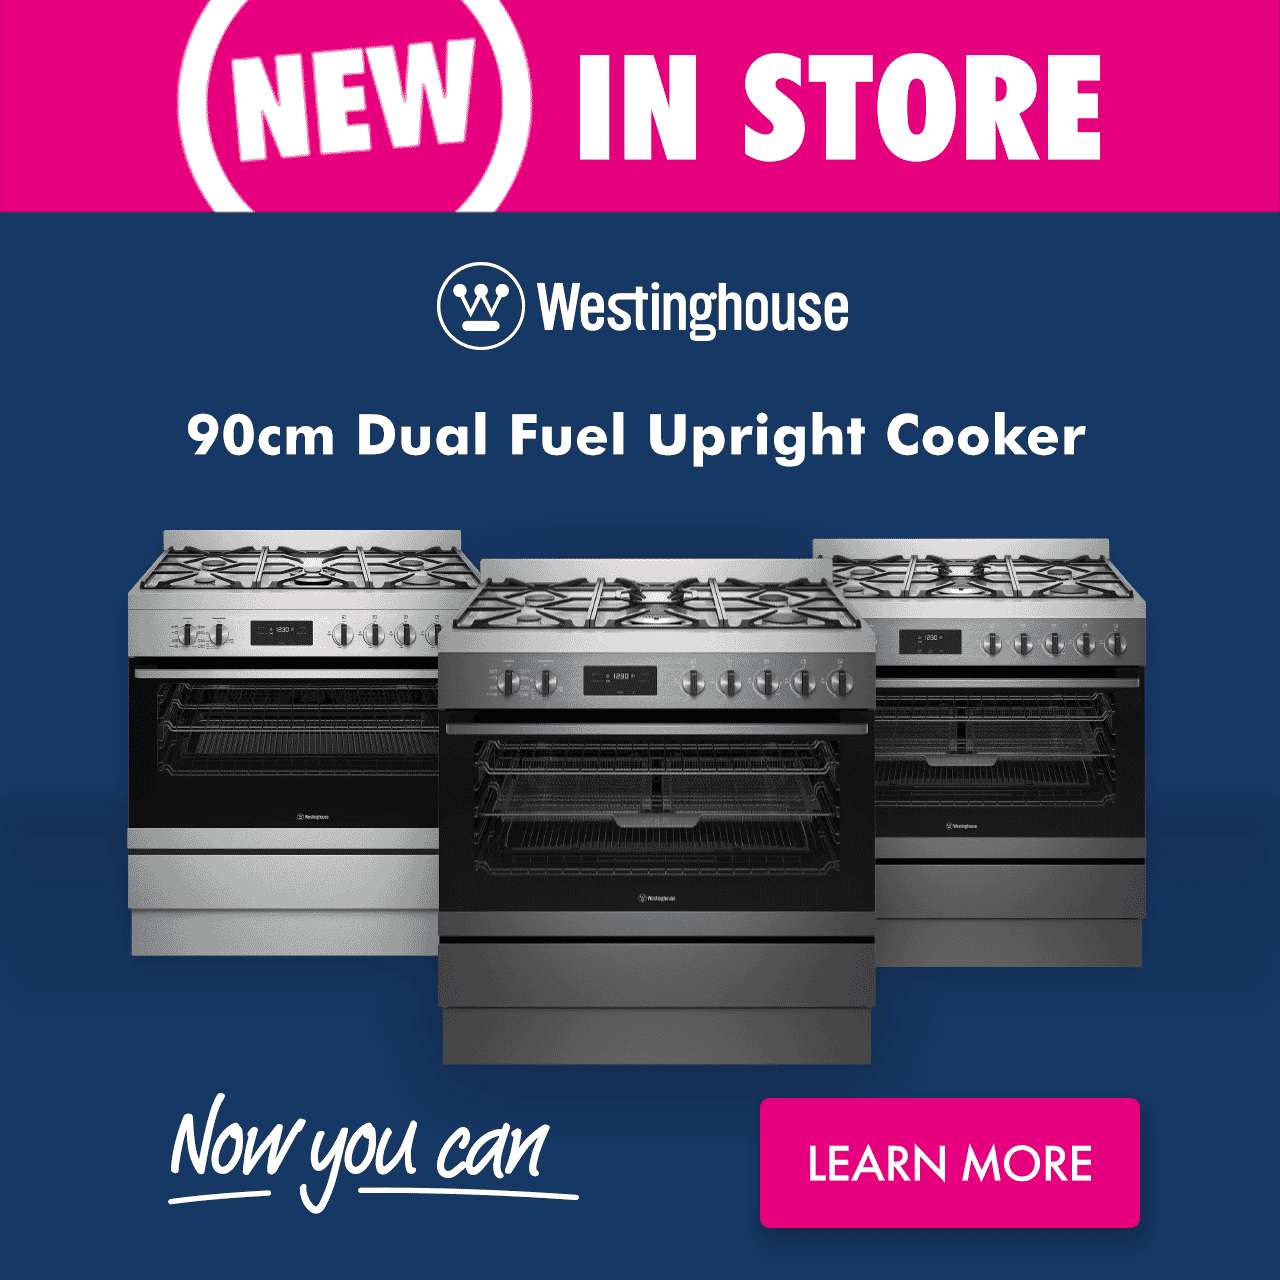 Westinghouse Cooking Range